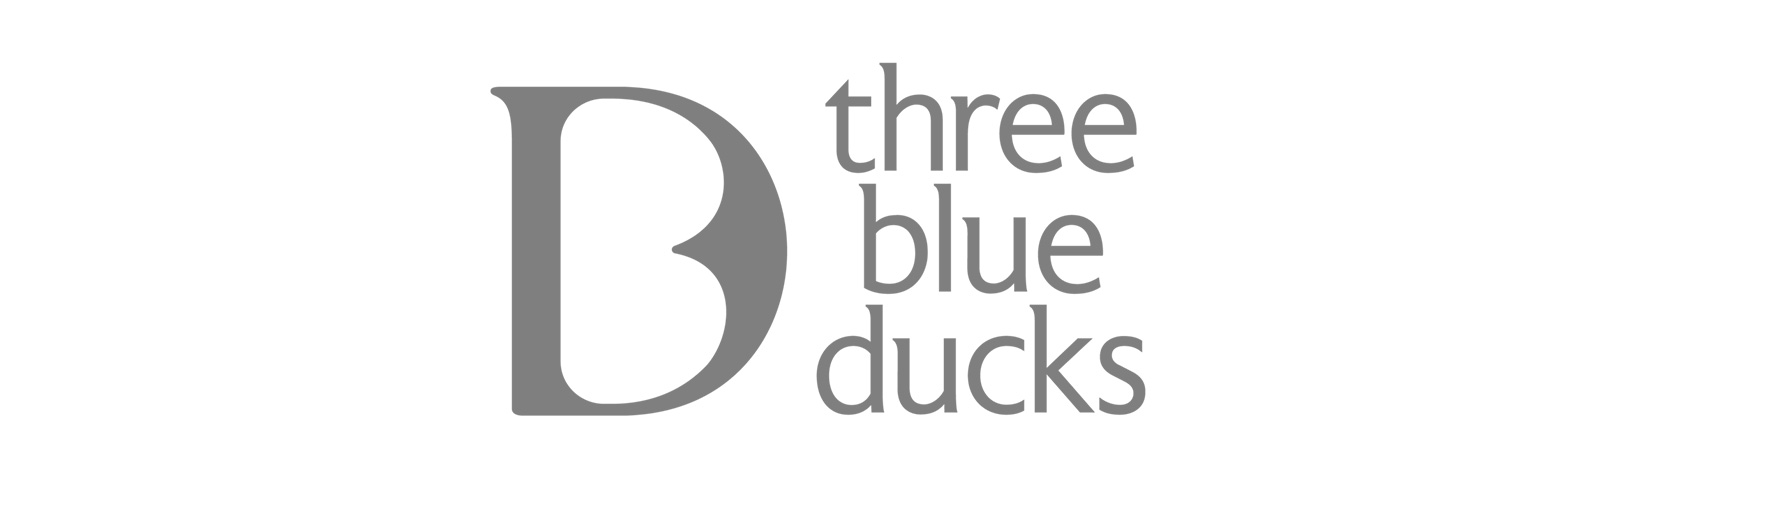 three_bue_ducks